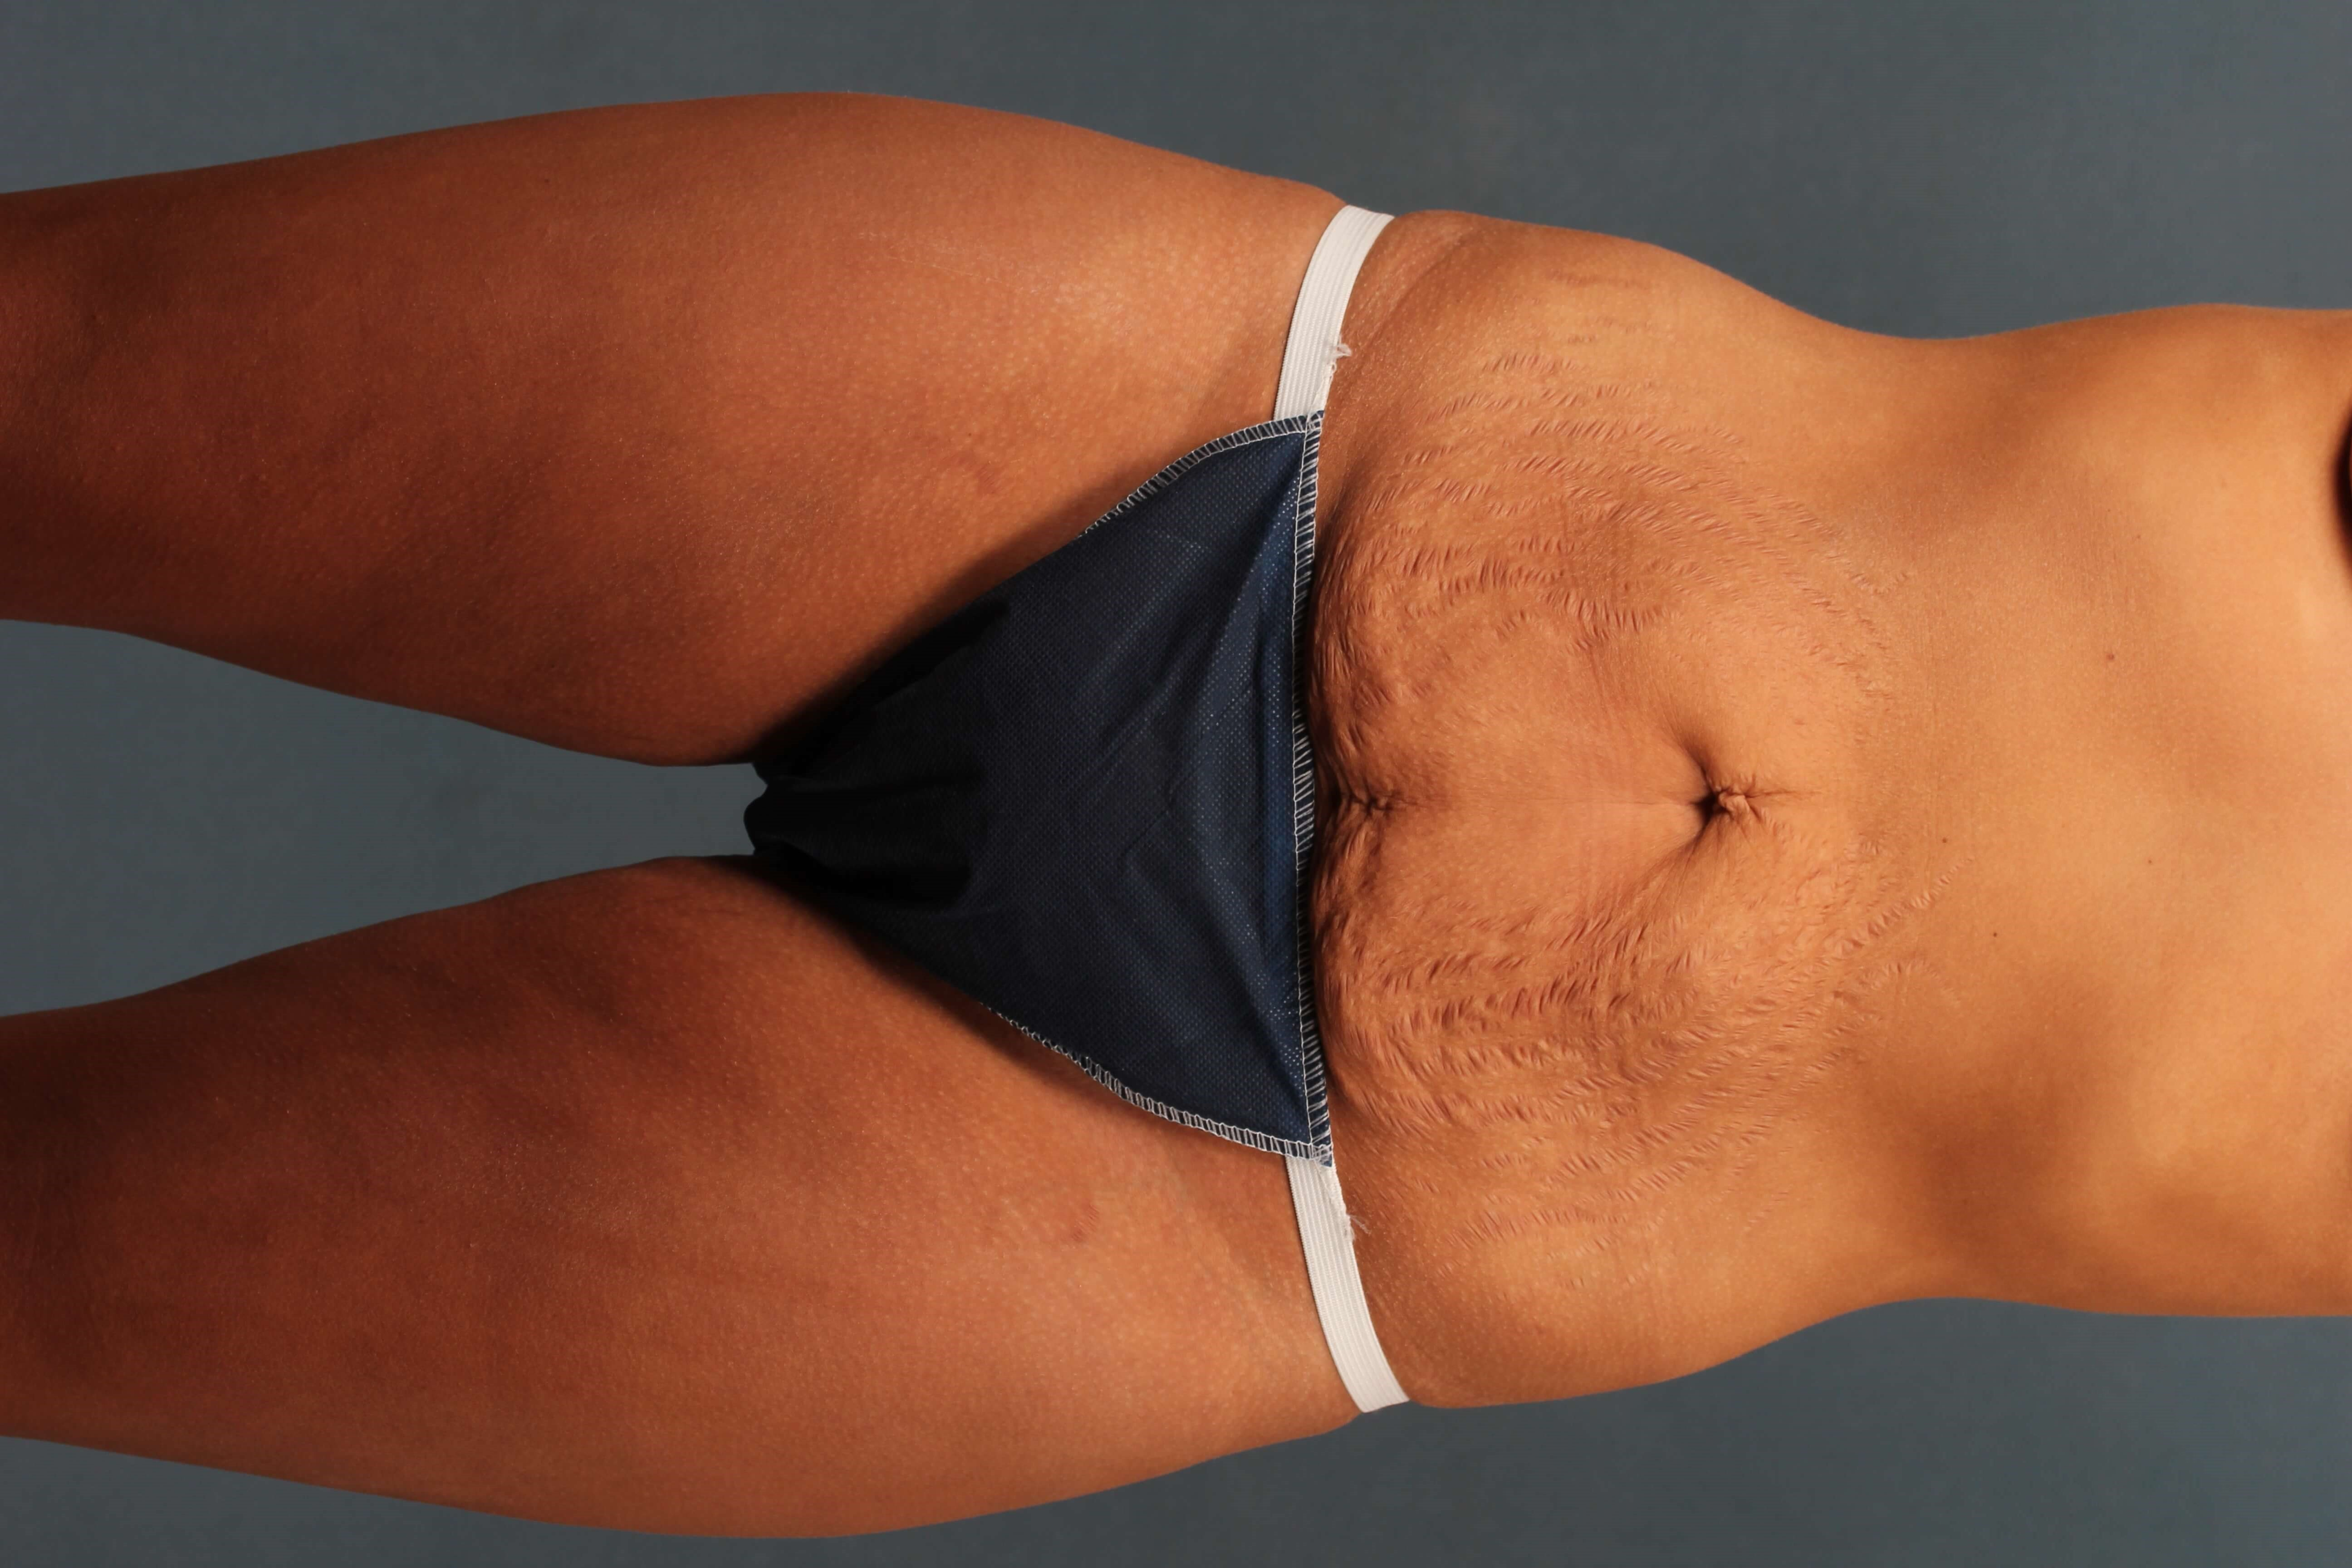 Abdominoplasty without drains Before